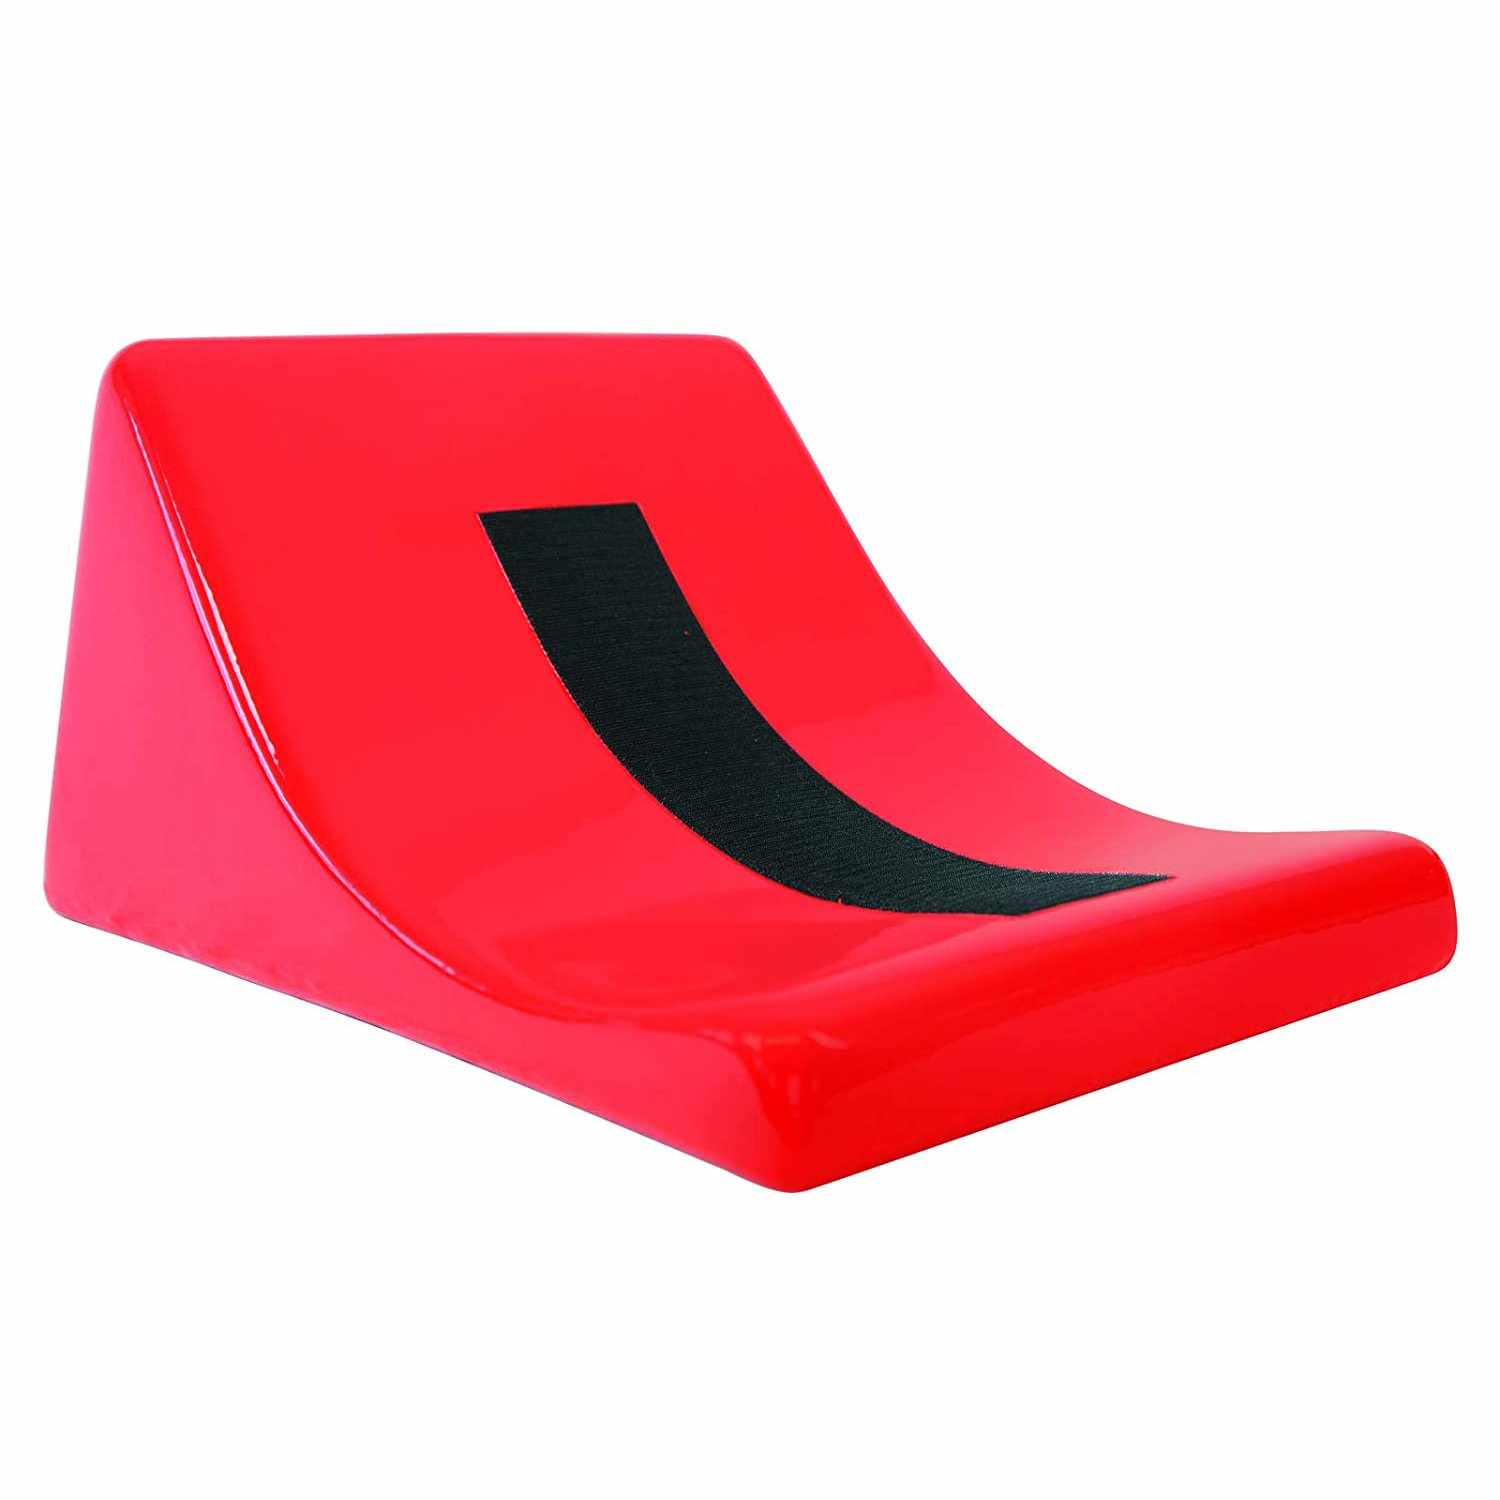 Tumble Forms Floor Sitter Wedge For Feeder Seat